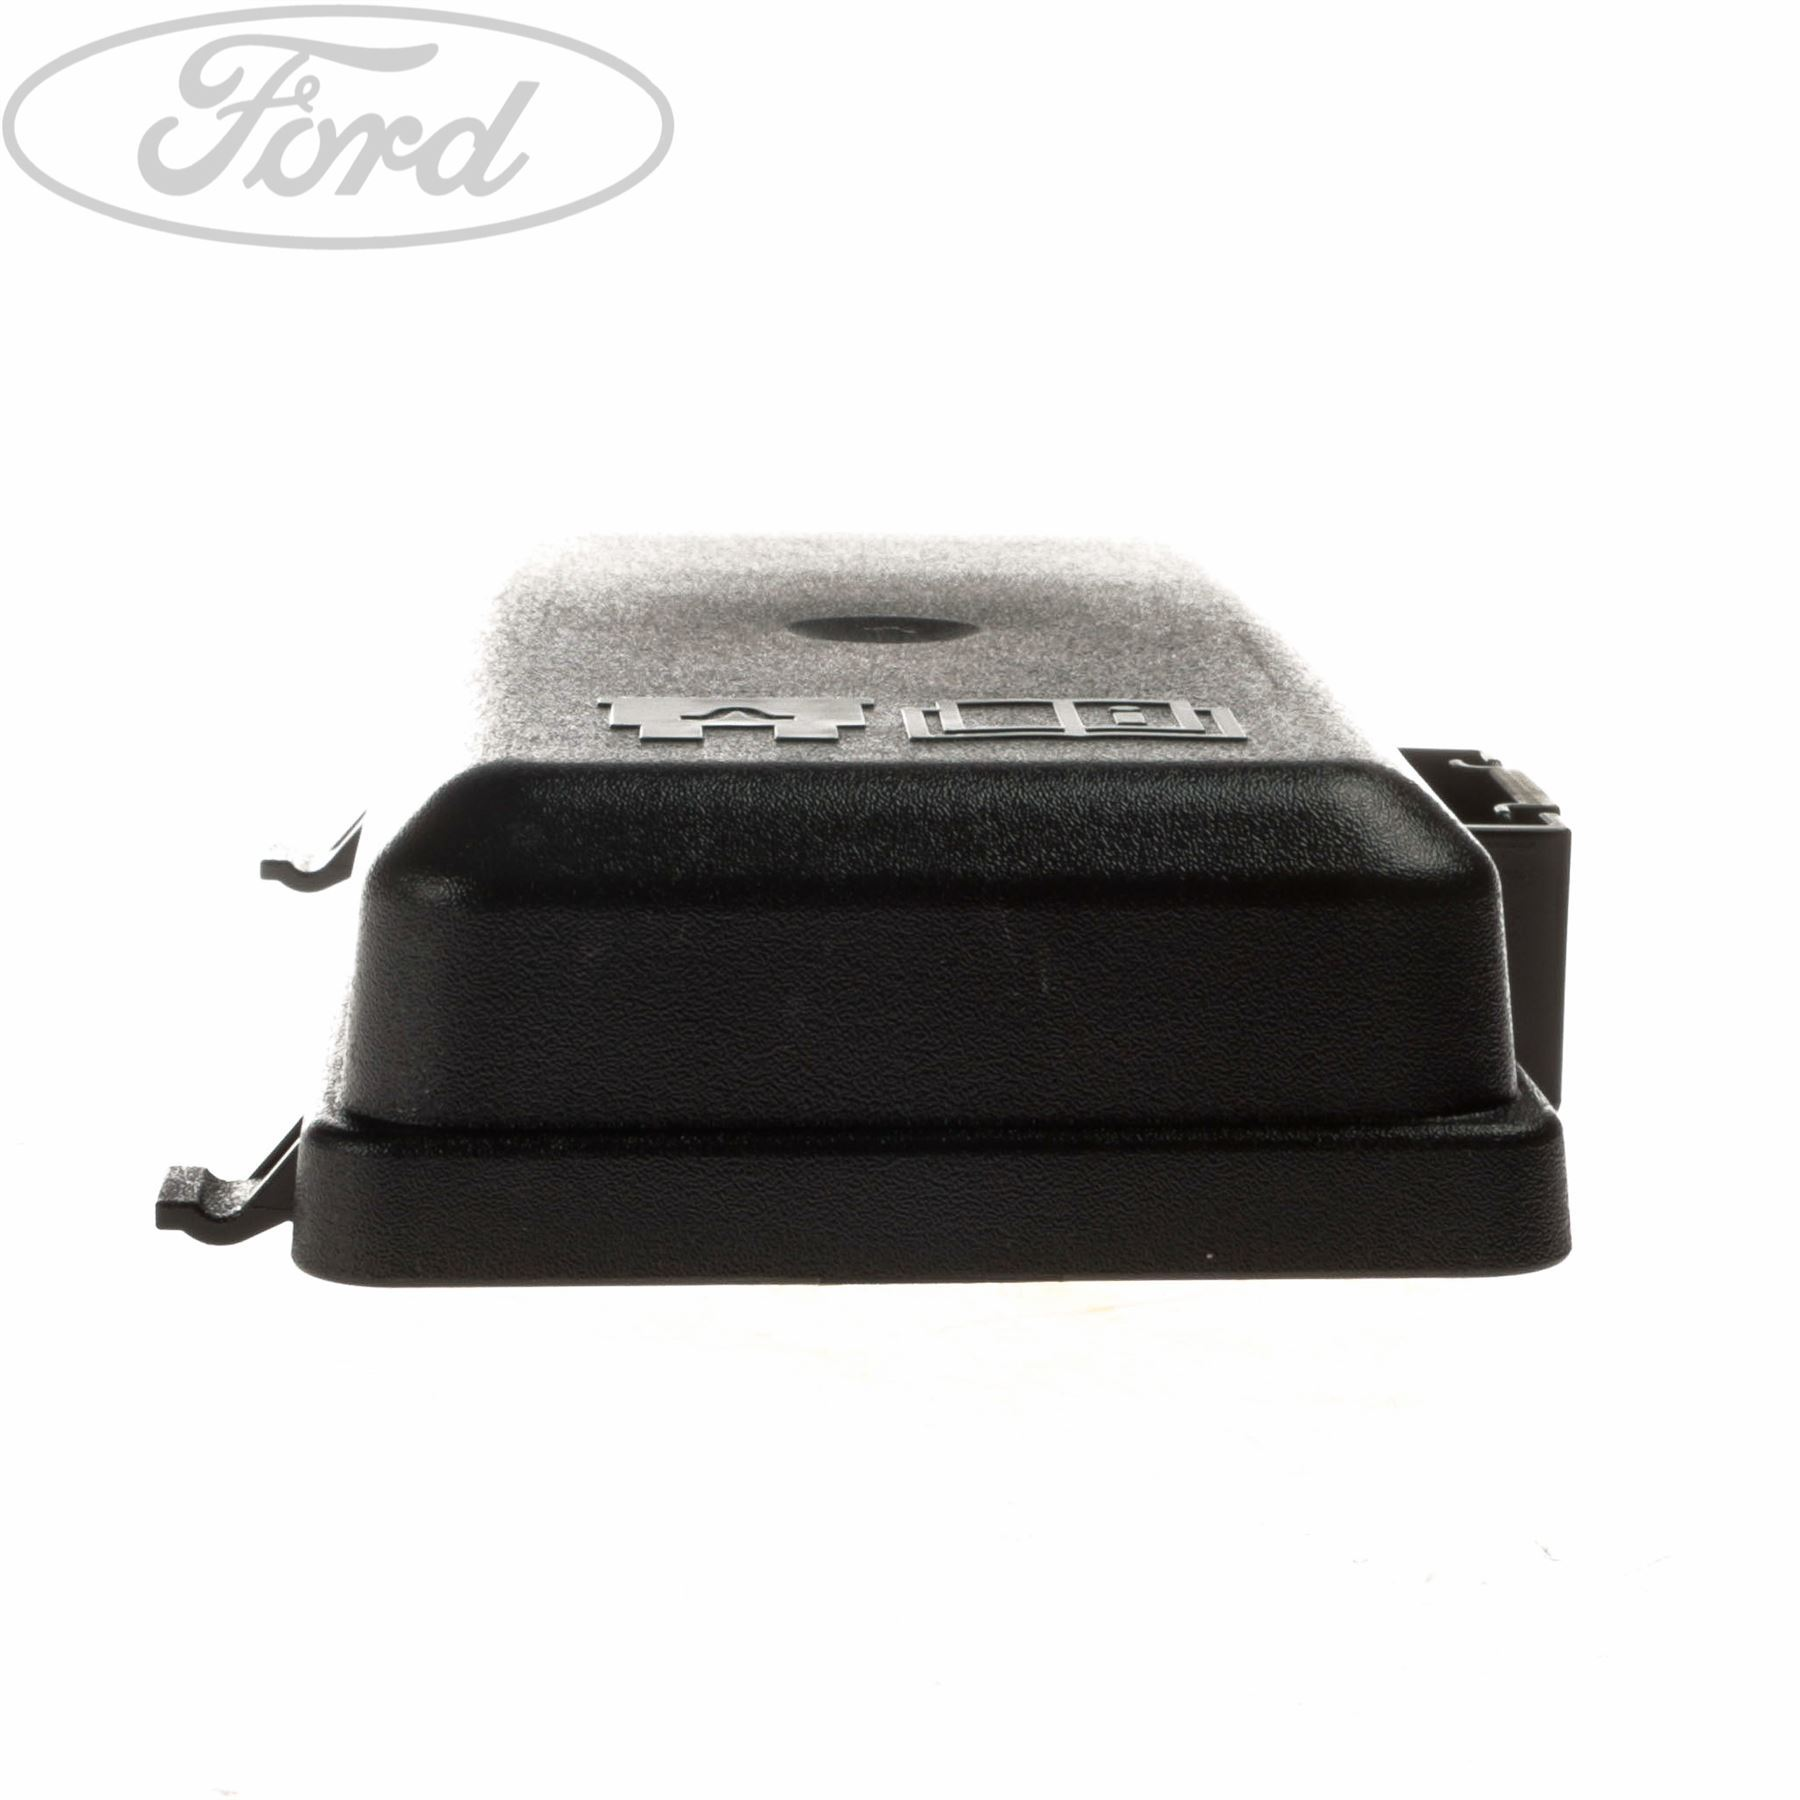 hight resolution of details about genuine ford transit mk 7 additional fuse box cover 1579004